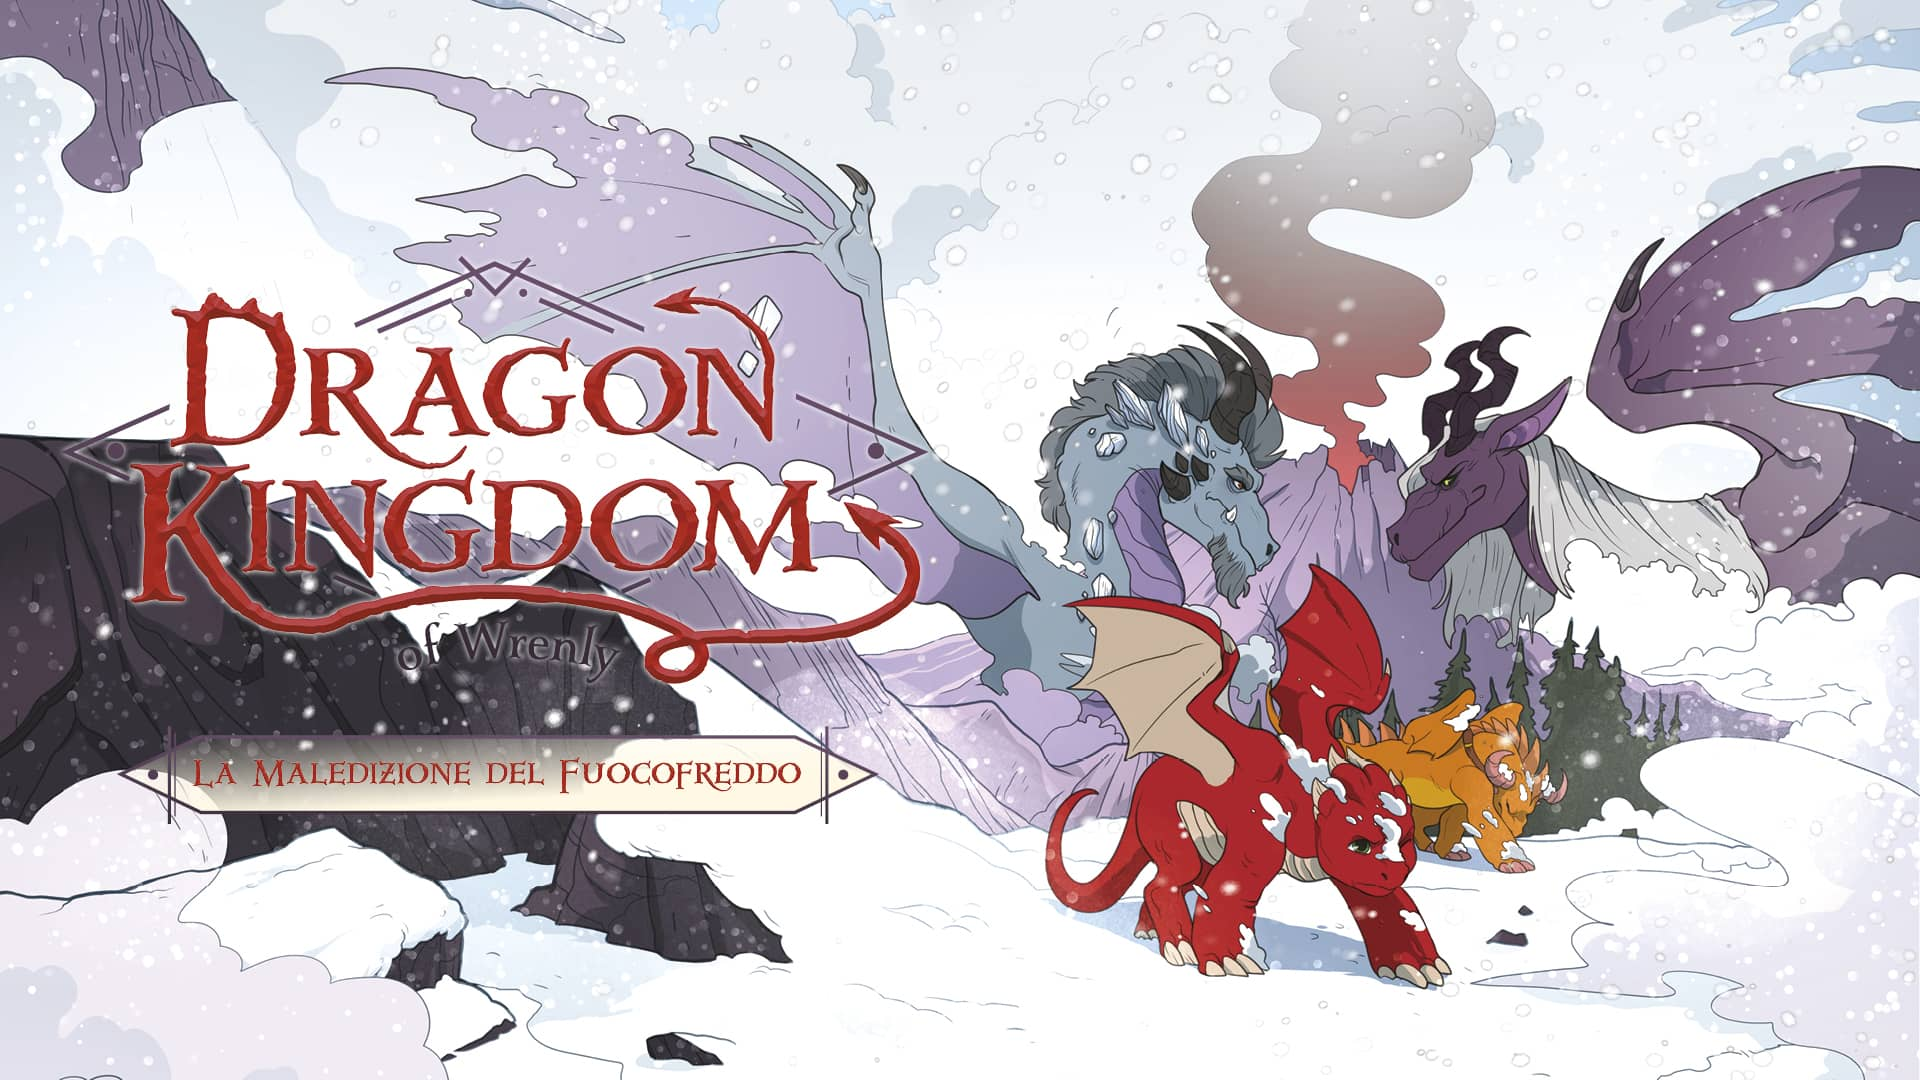 Dragon Kingdom of Wrenly graphic novel fantasy con draghi